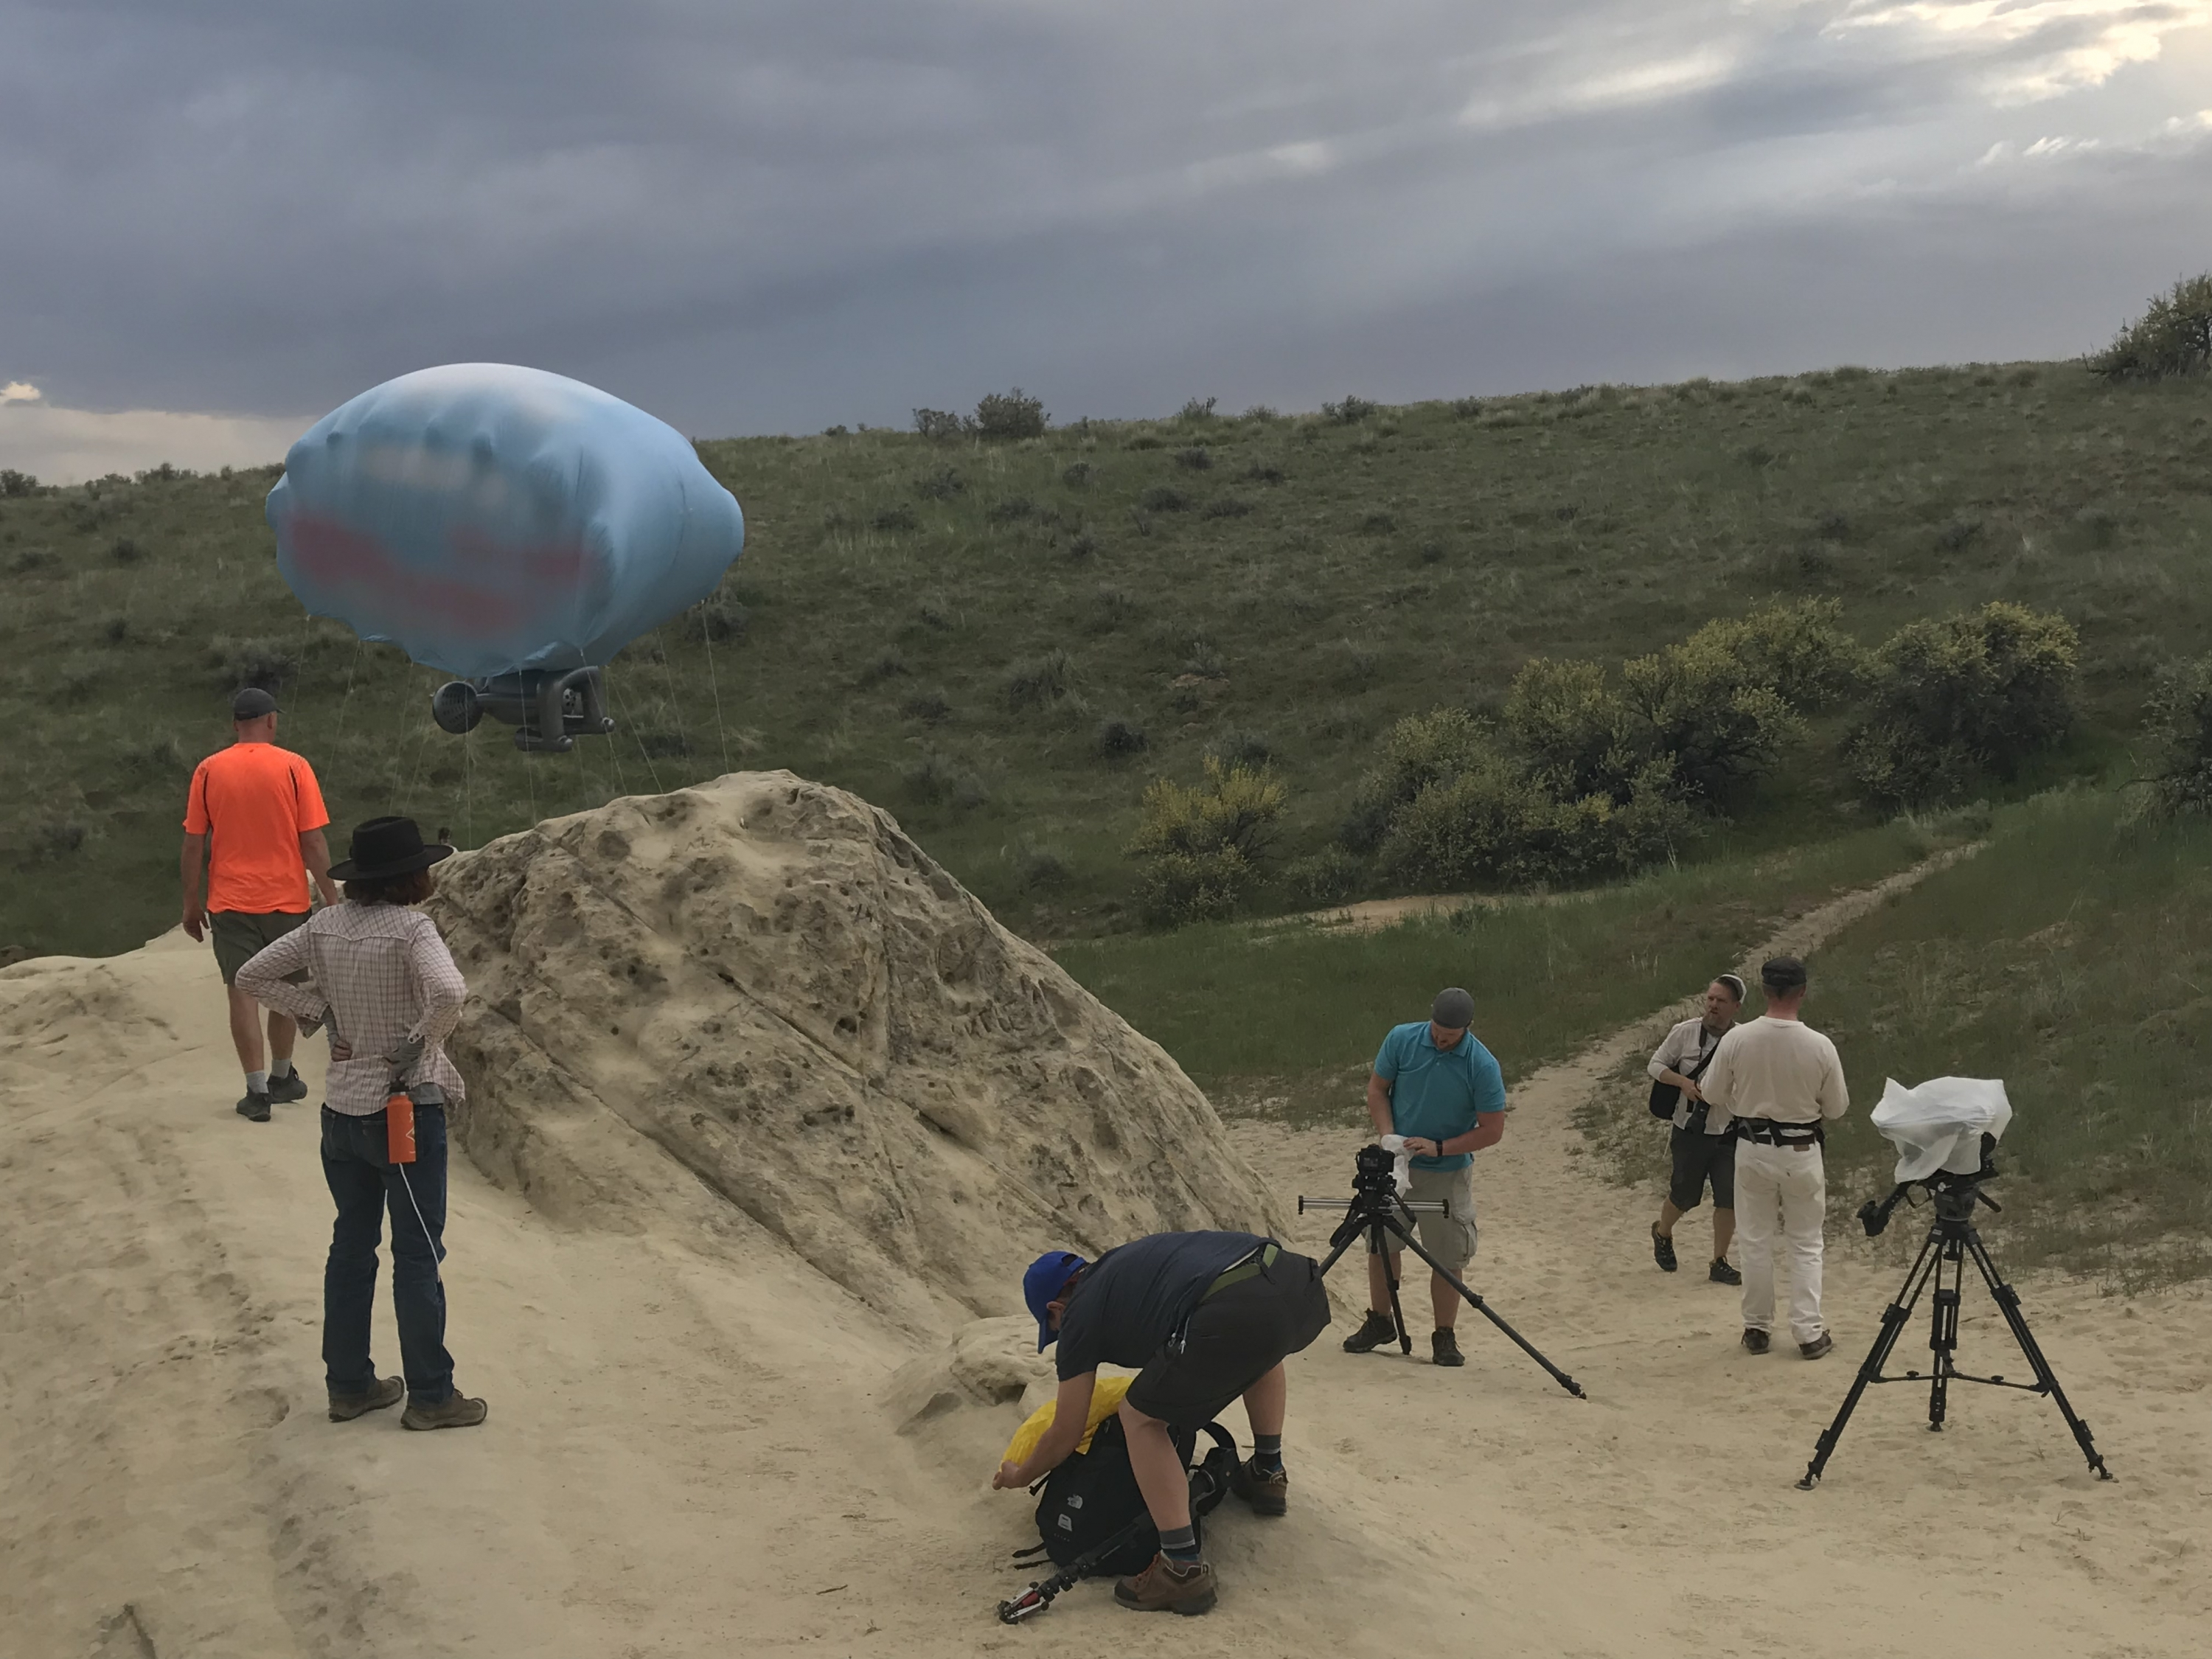 Camera crew setting up around Cloudship performance art in the Boise foothills